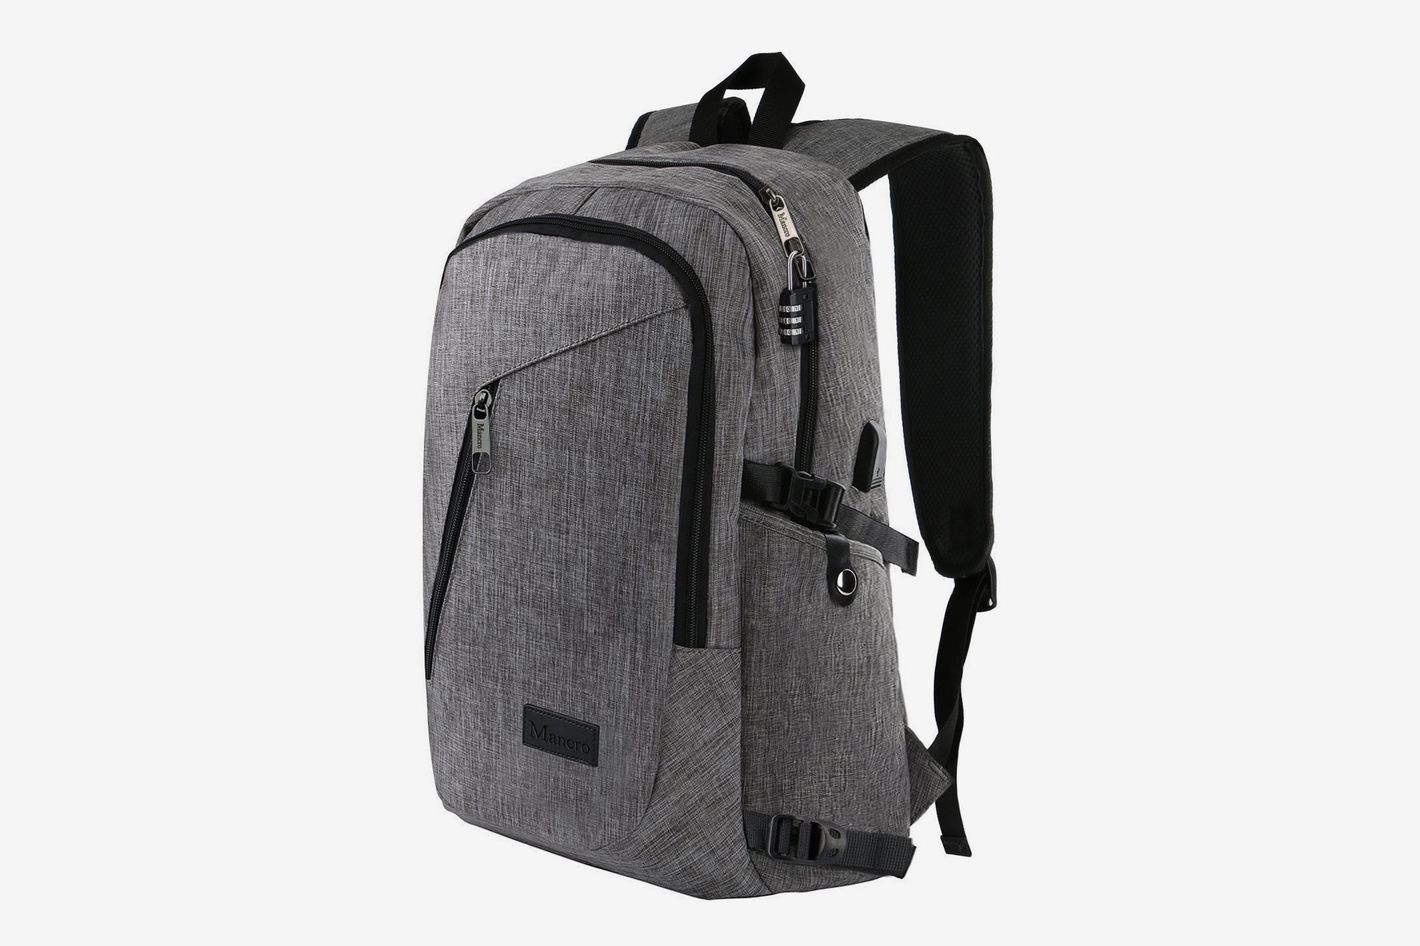 0c99f67250e0 For high-school students. Mancro Laptop Backpack